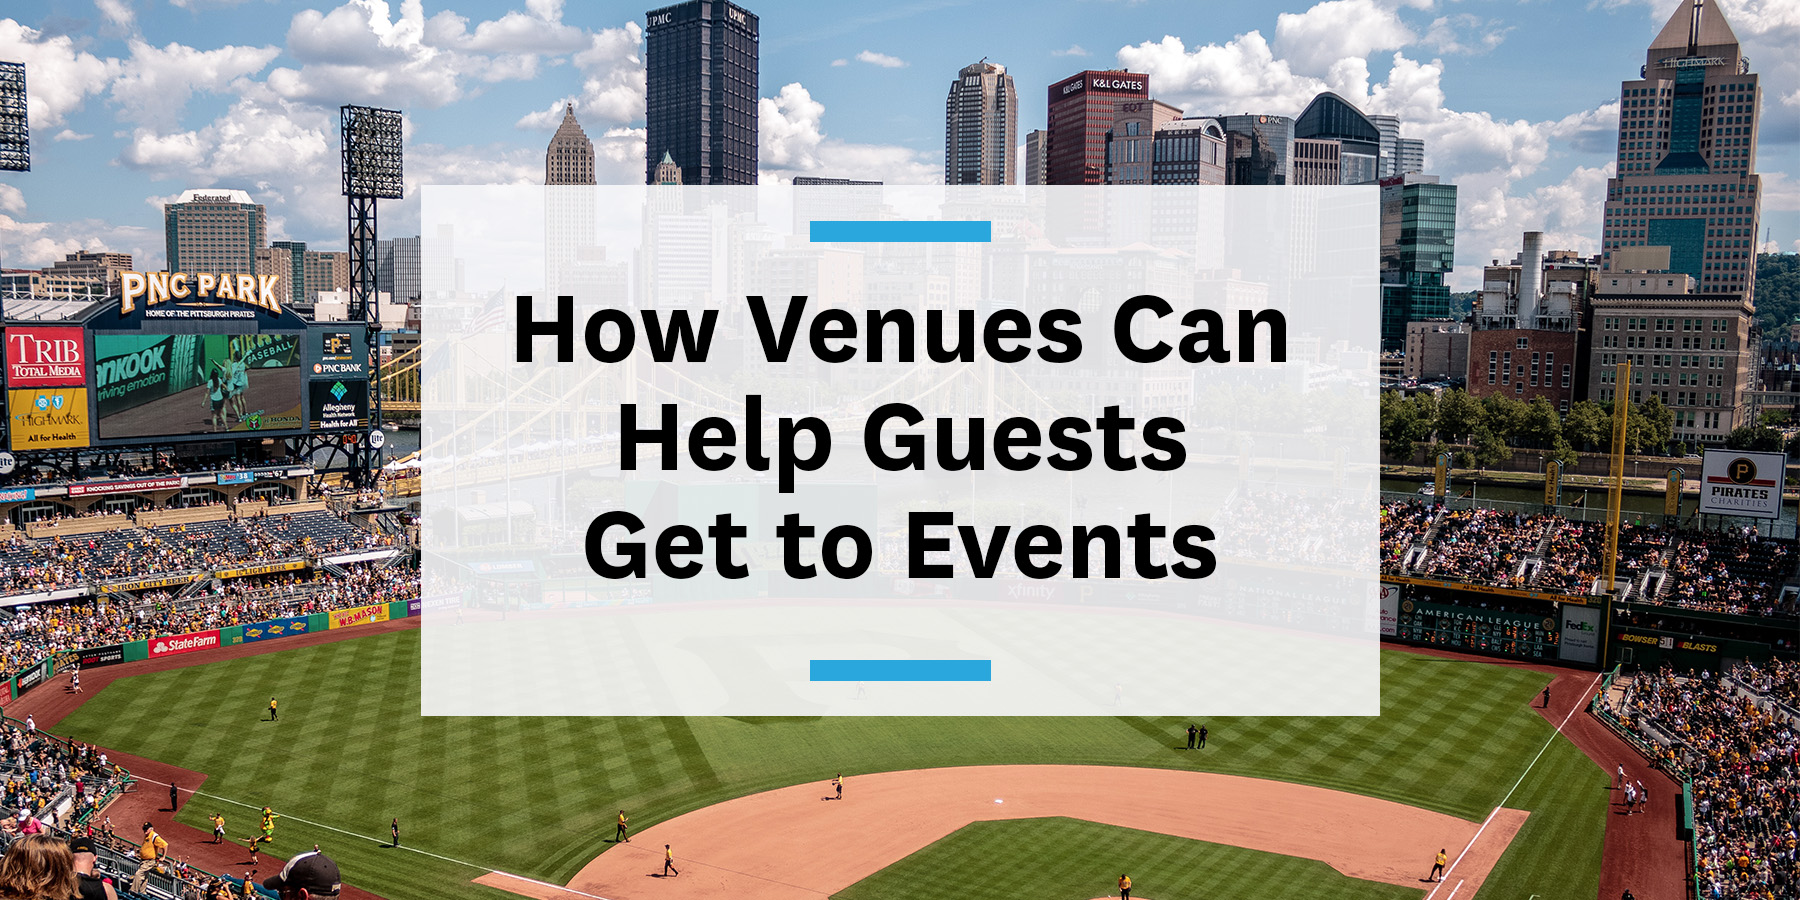 How venues can help guests and fans get to concerts games events on transit and micromobility